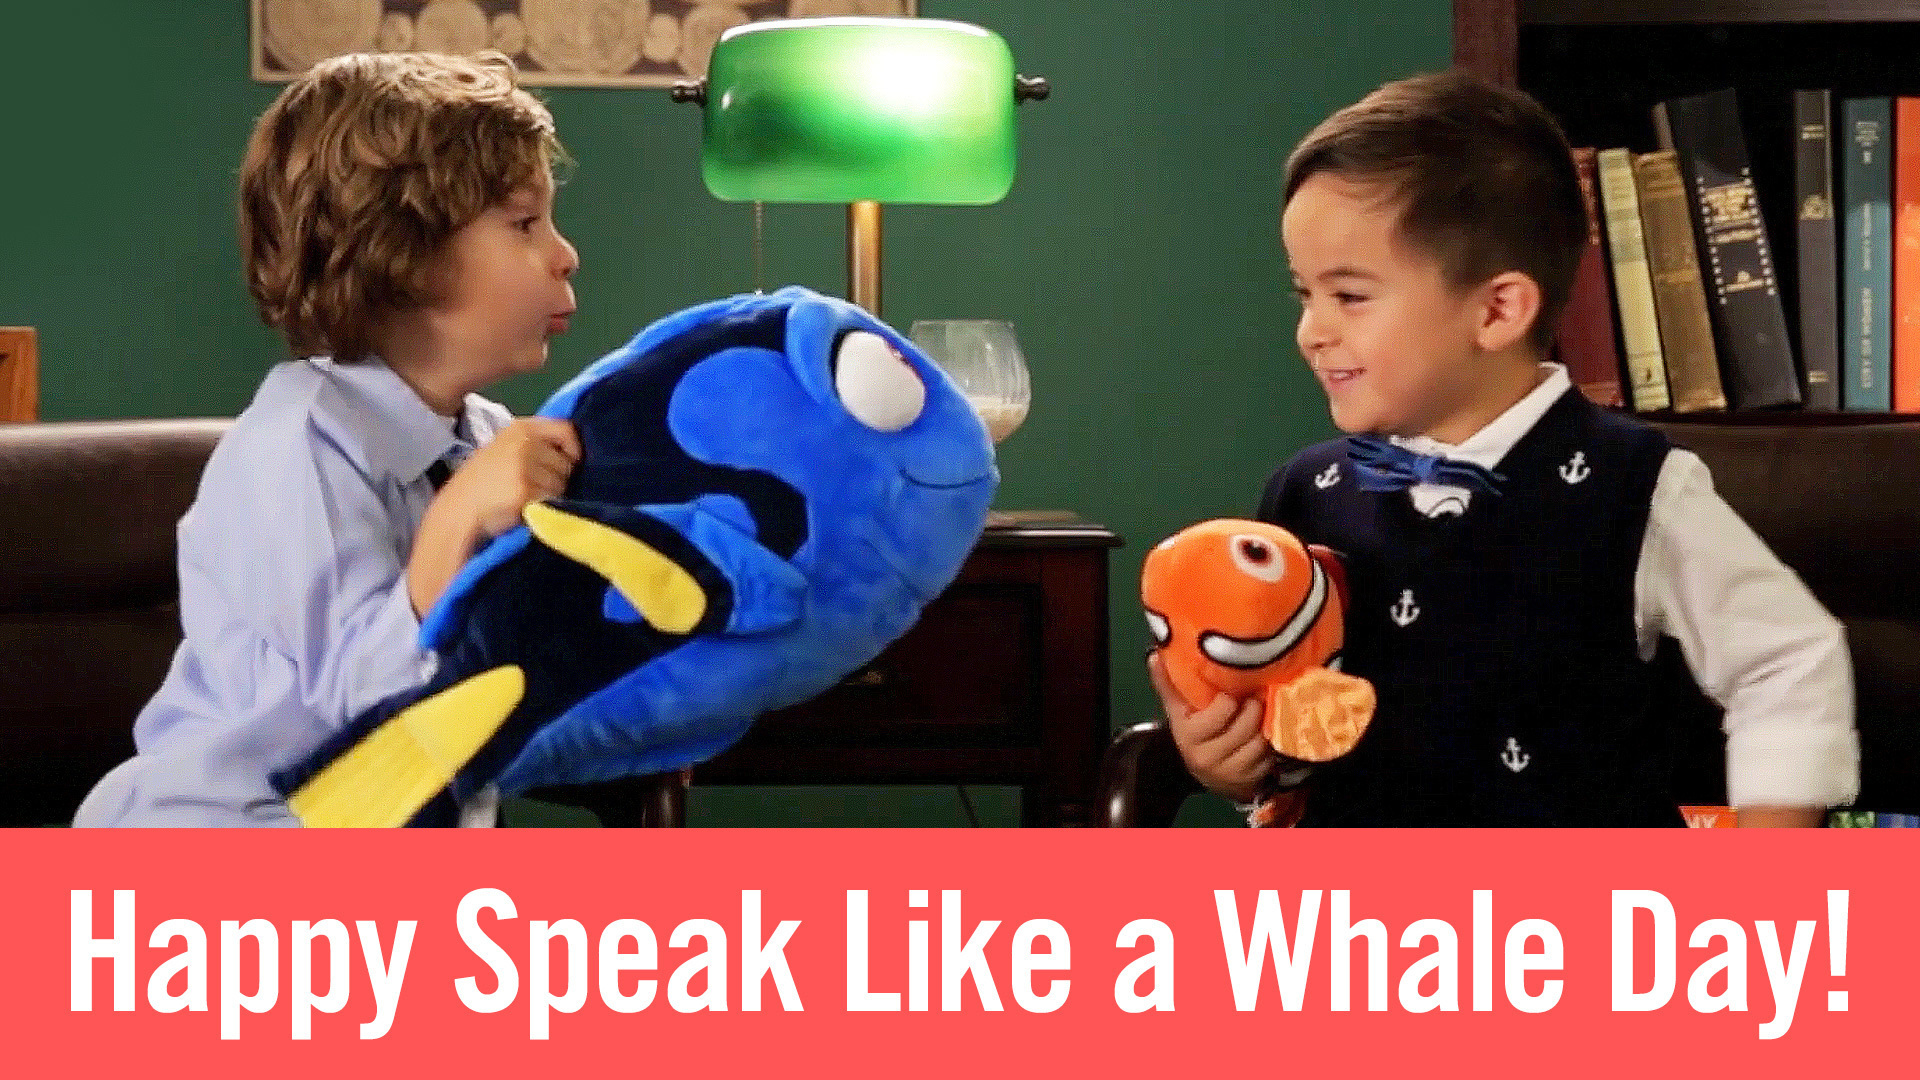 Happy Speak Like a Whale Day!